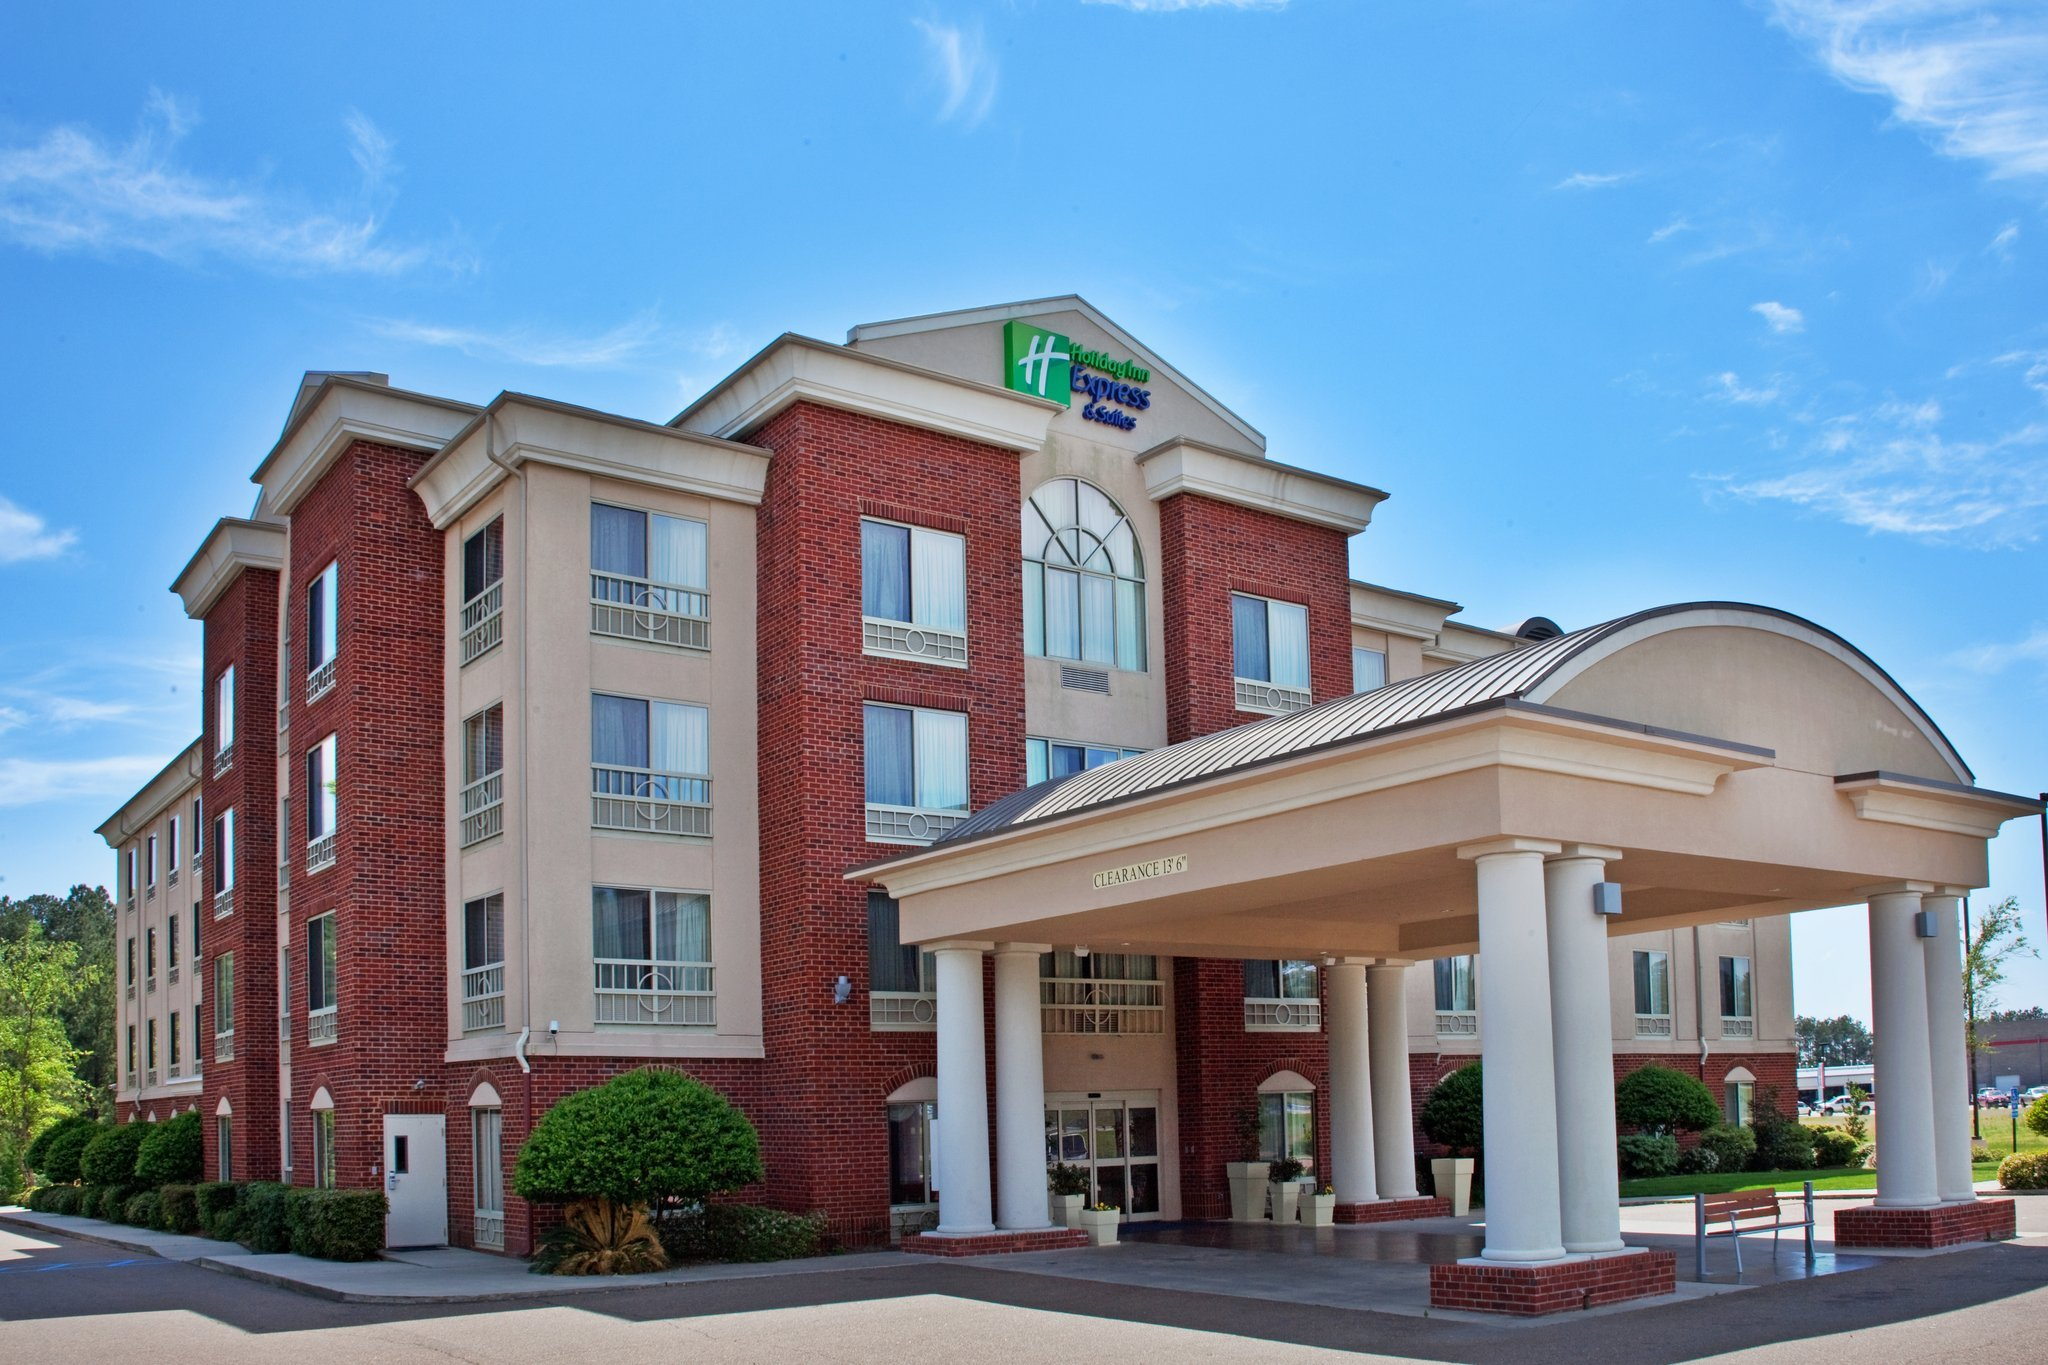 Holiday Inn Express Hotel & Suites West Monroe